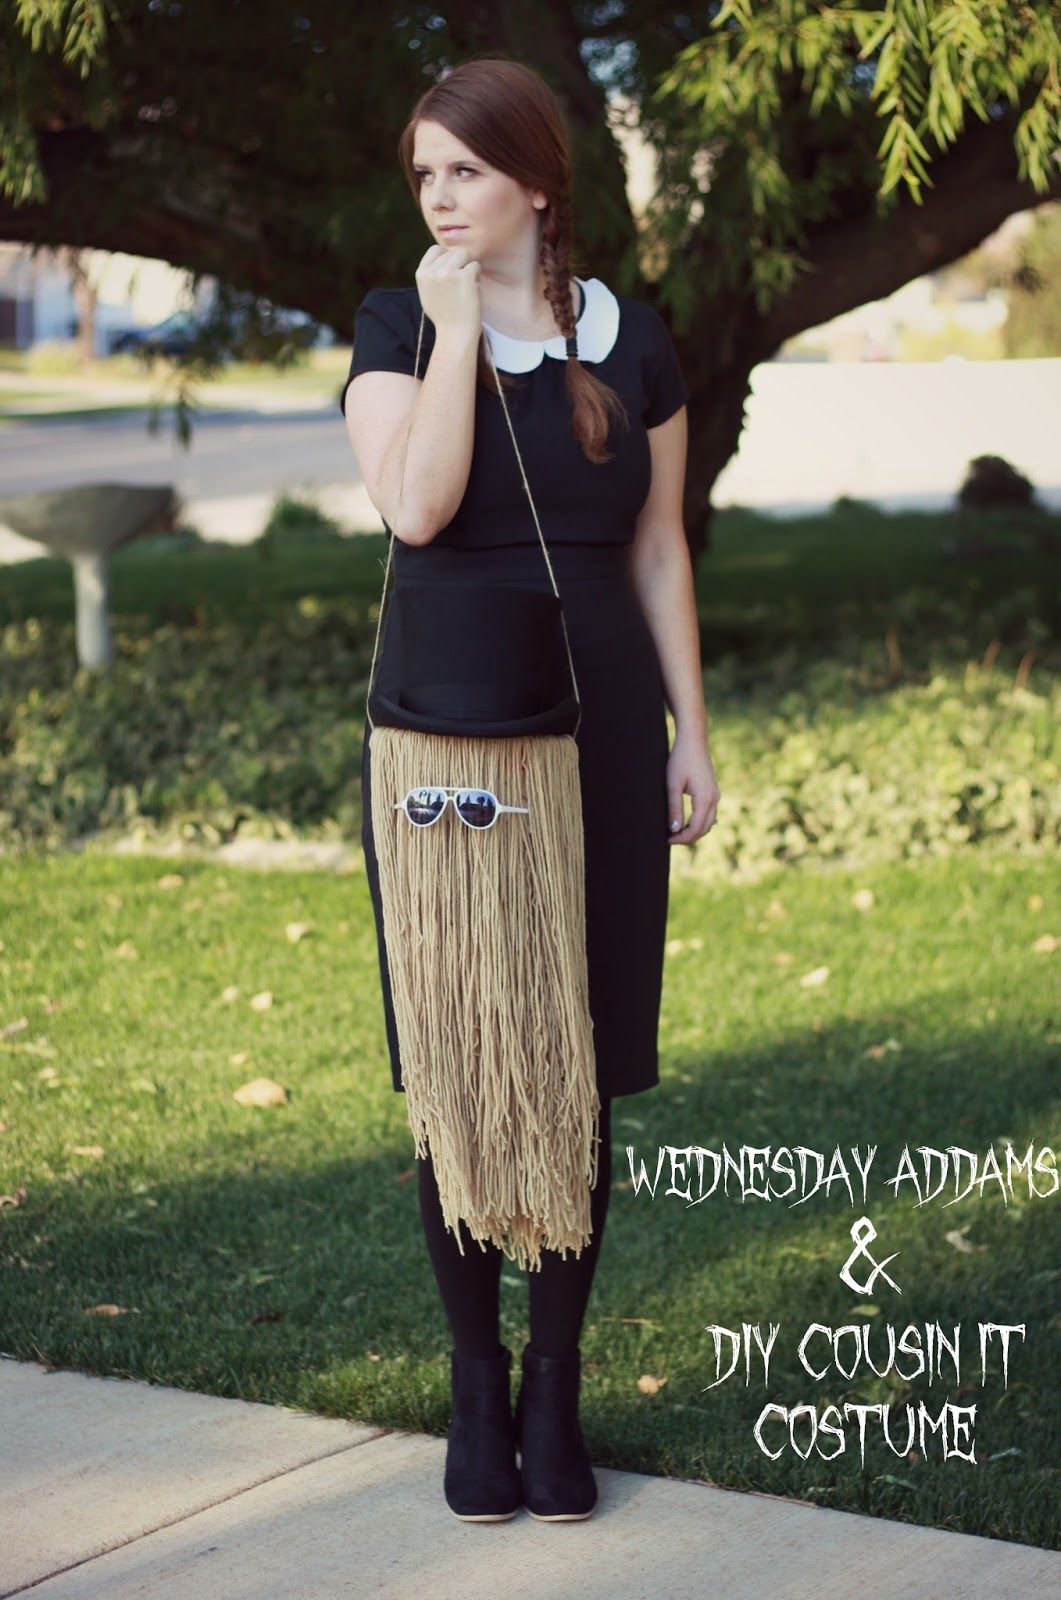 DIY Halloween Costume Wednesday Addams and Cousin It